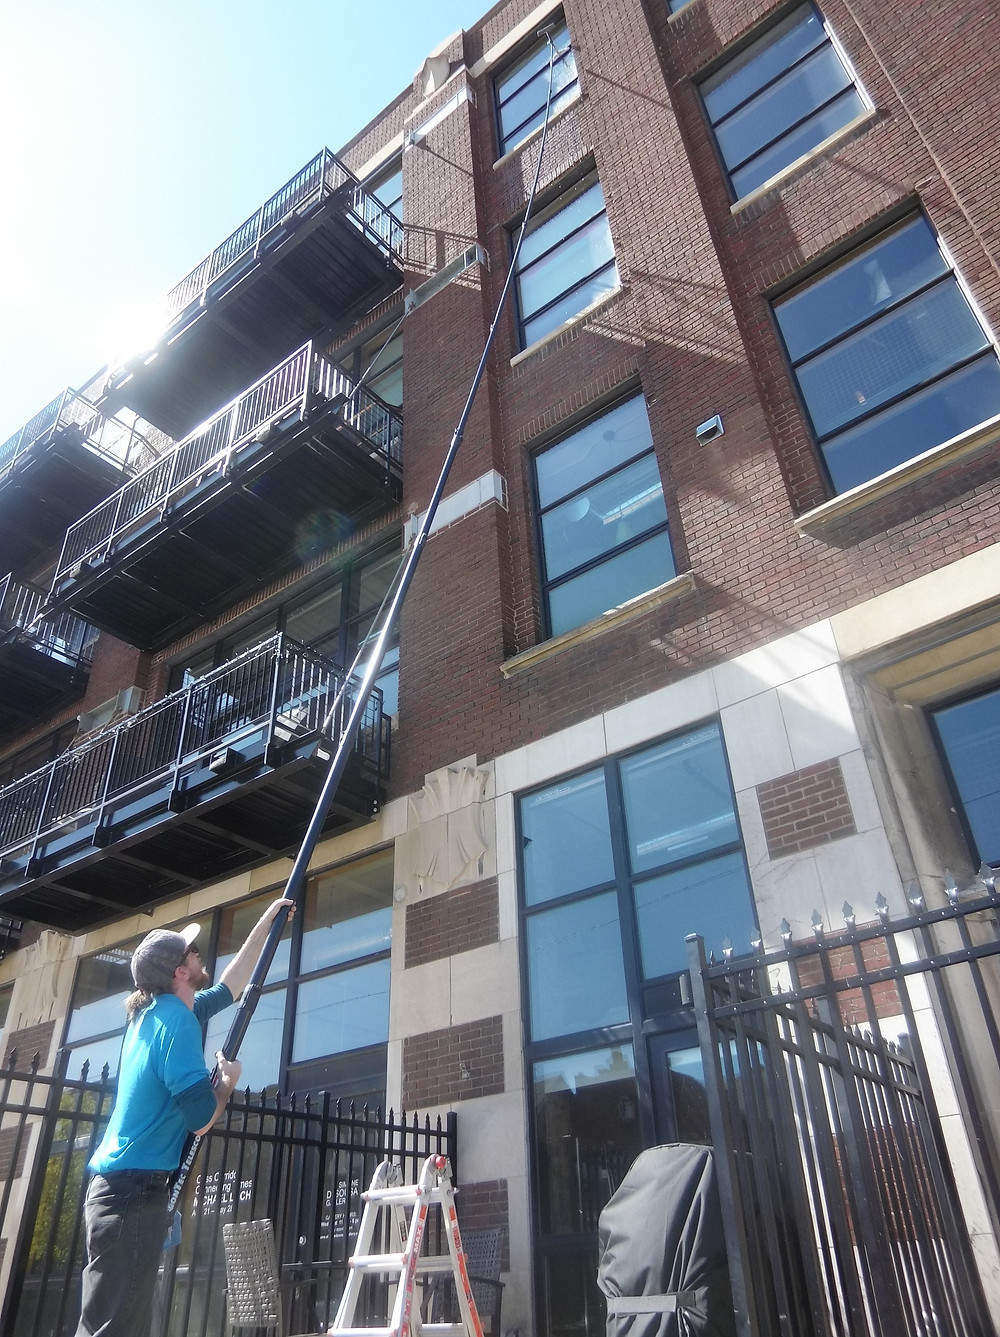 Cleaning 4th Story Windows at Willy's Overland Lofts in Midtown